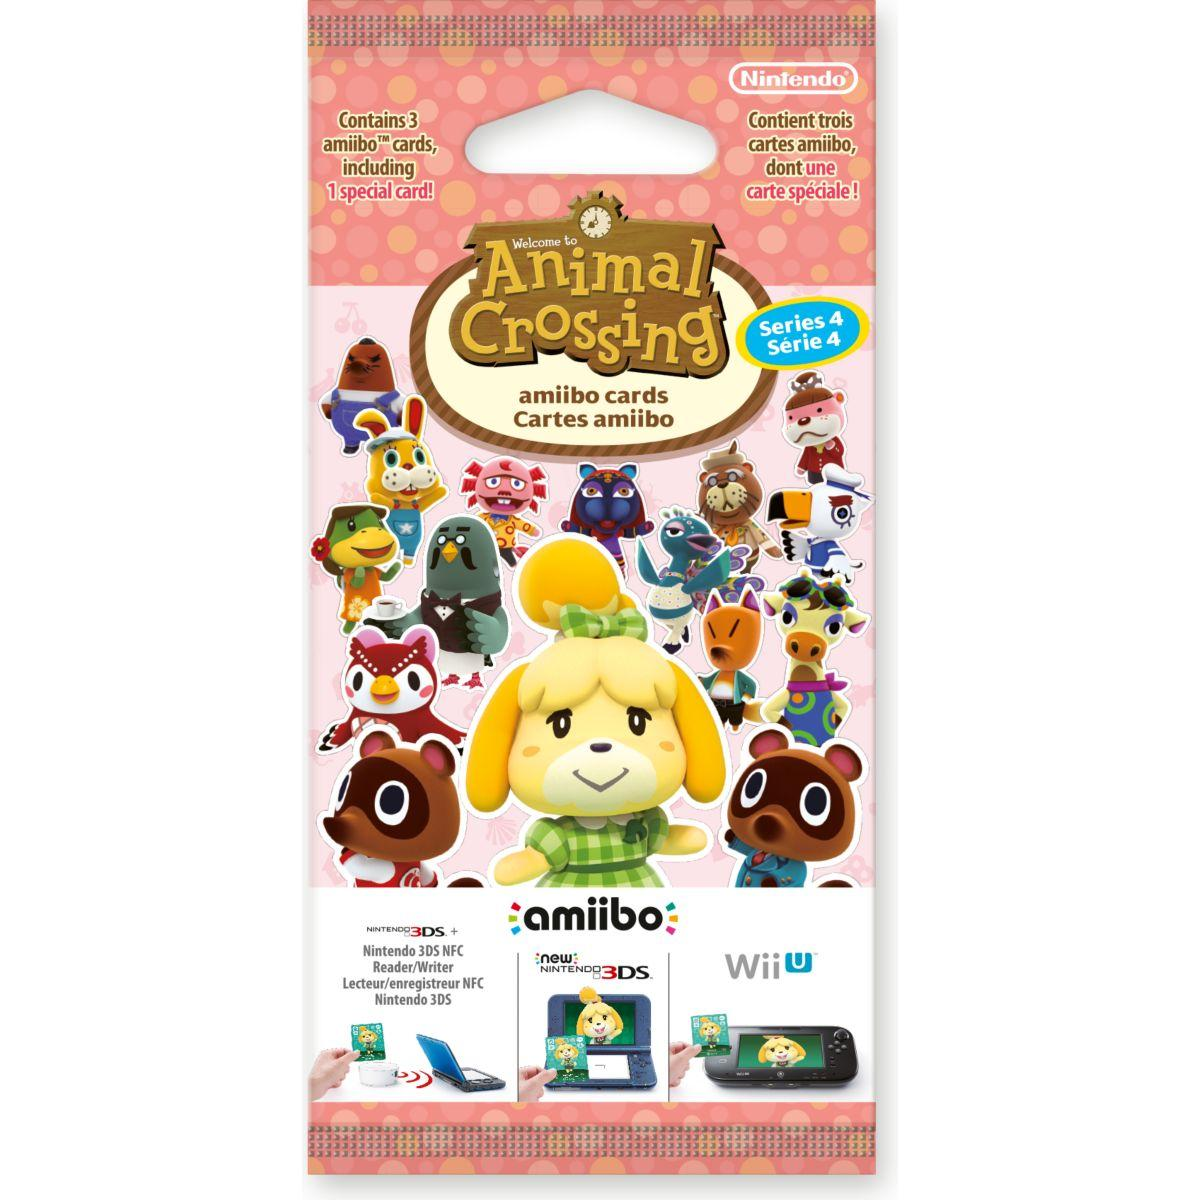 Figurine nintendo 3 cartes animal crossing hdd s�rie 4 (photo)